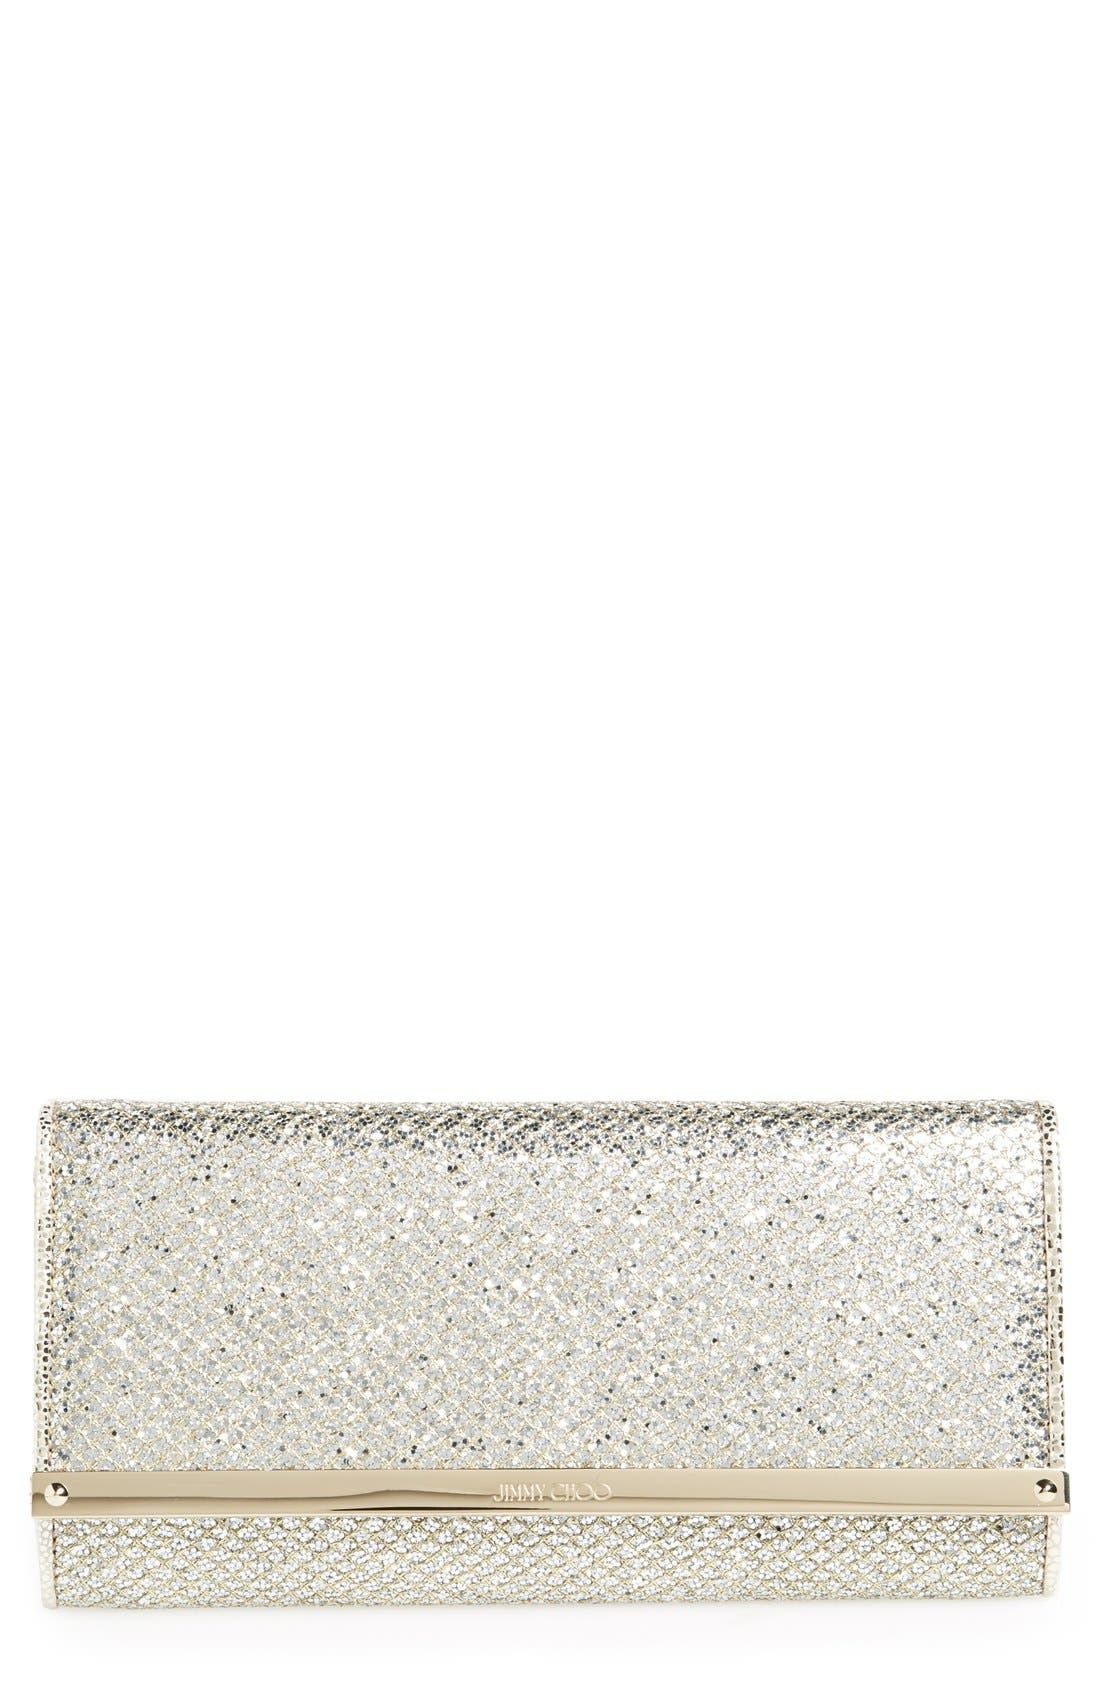 Alternate Image 1 Selected - Jimmy Choo 'Milla' Glitter Wallet on a Chain